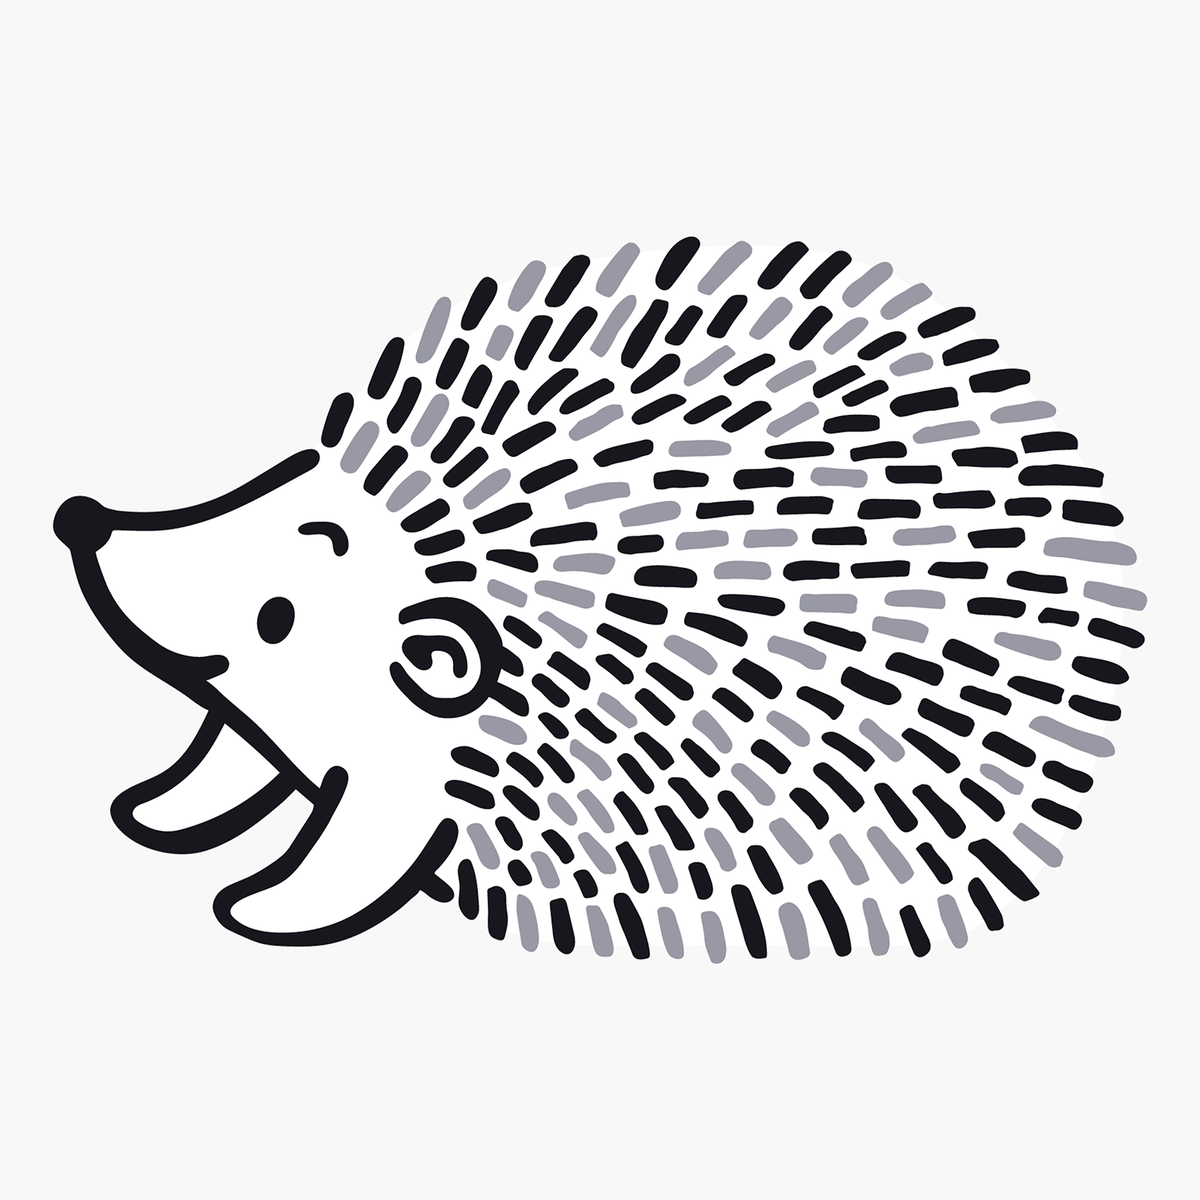 Hedgehog Clipart Black And White (93+ images in Collection) Page 2.